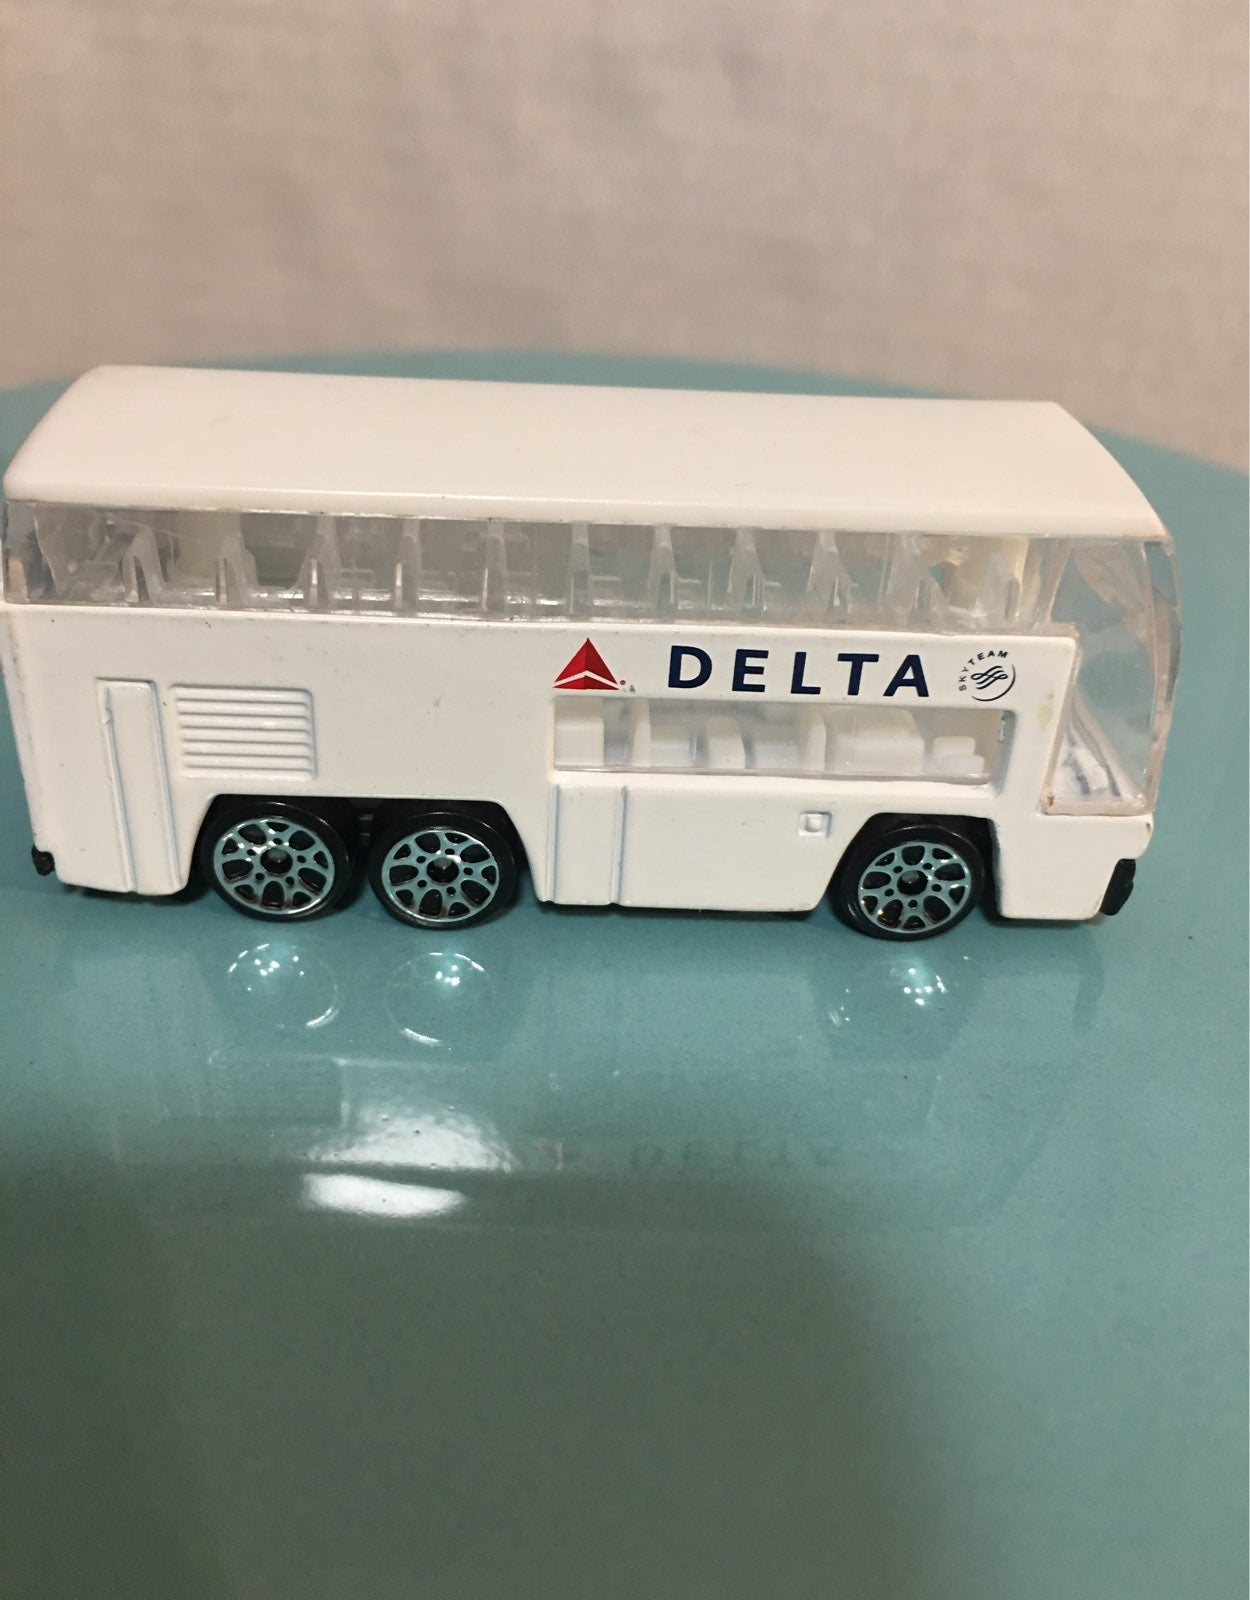 Delta Double Decker Bus